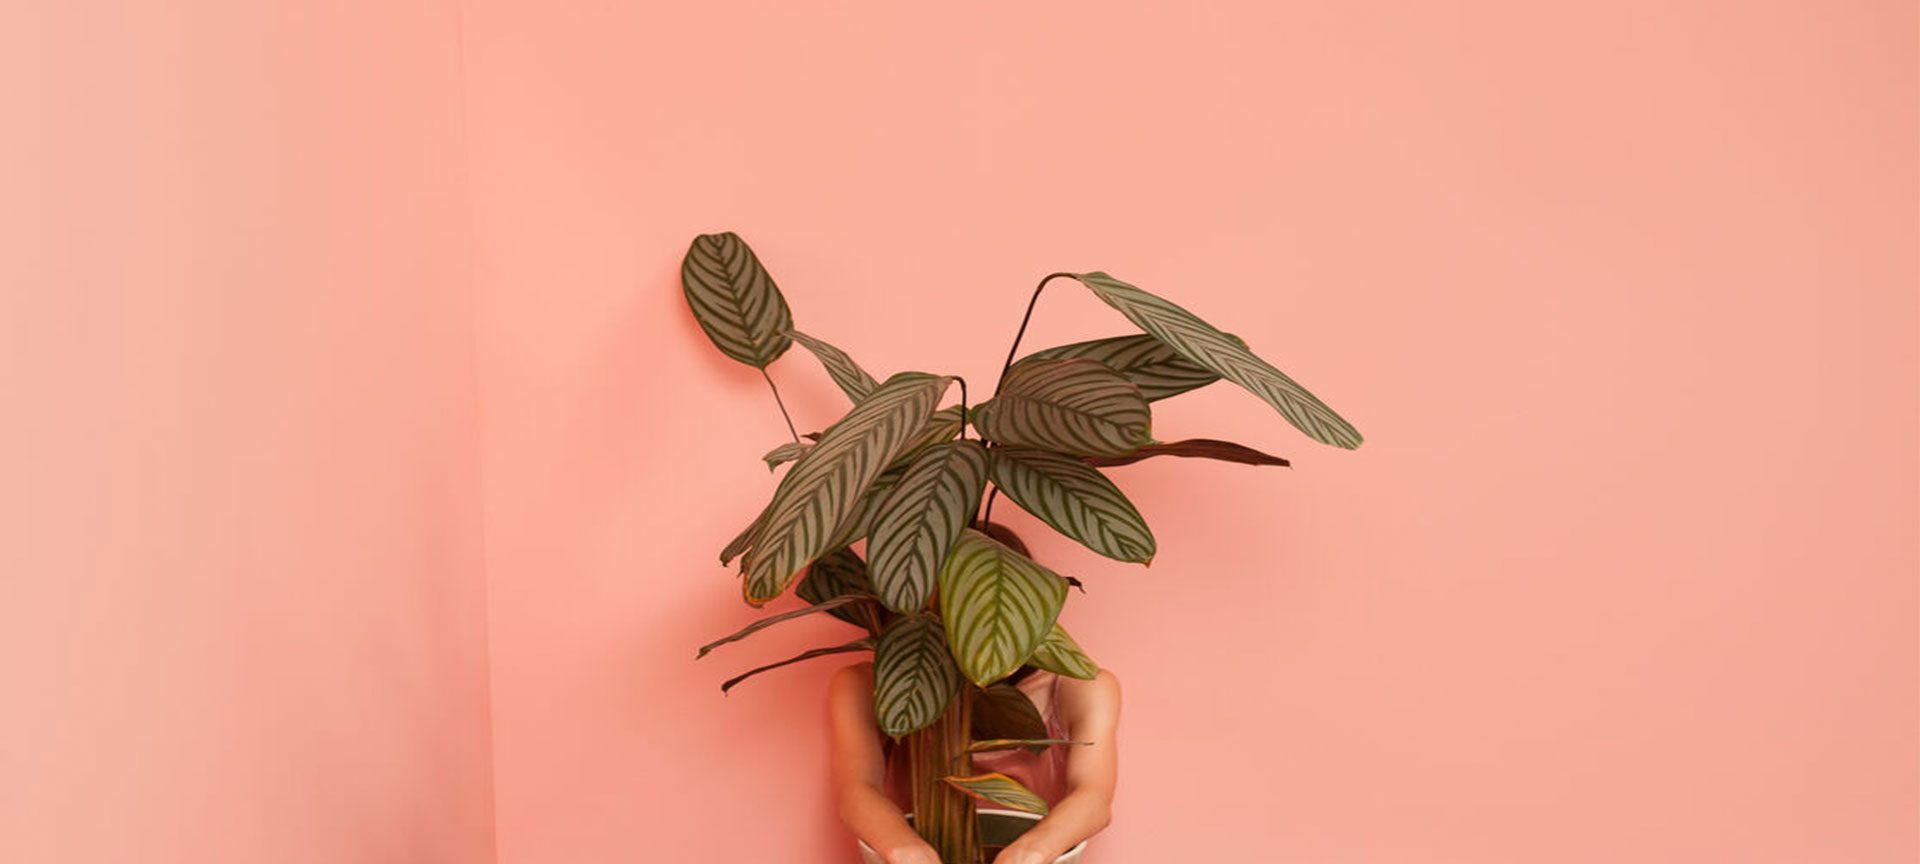 Female model sitting on the floor with a plant pot in pink room